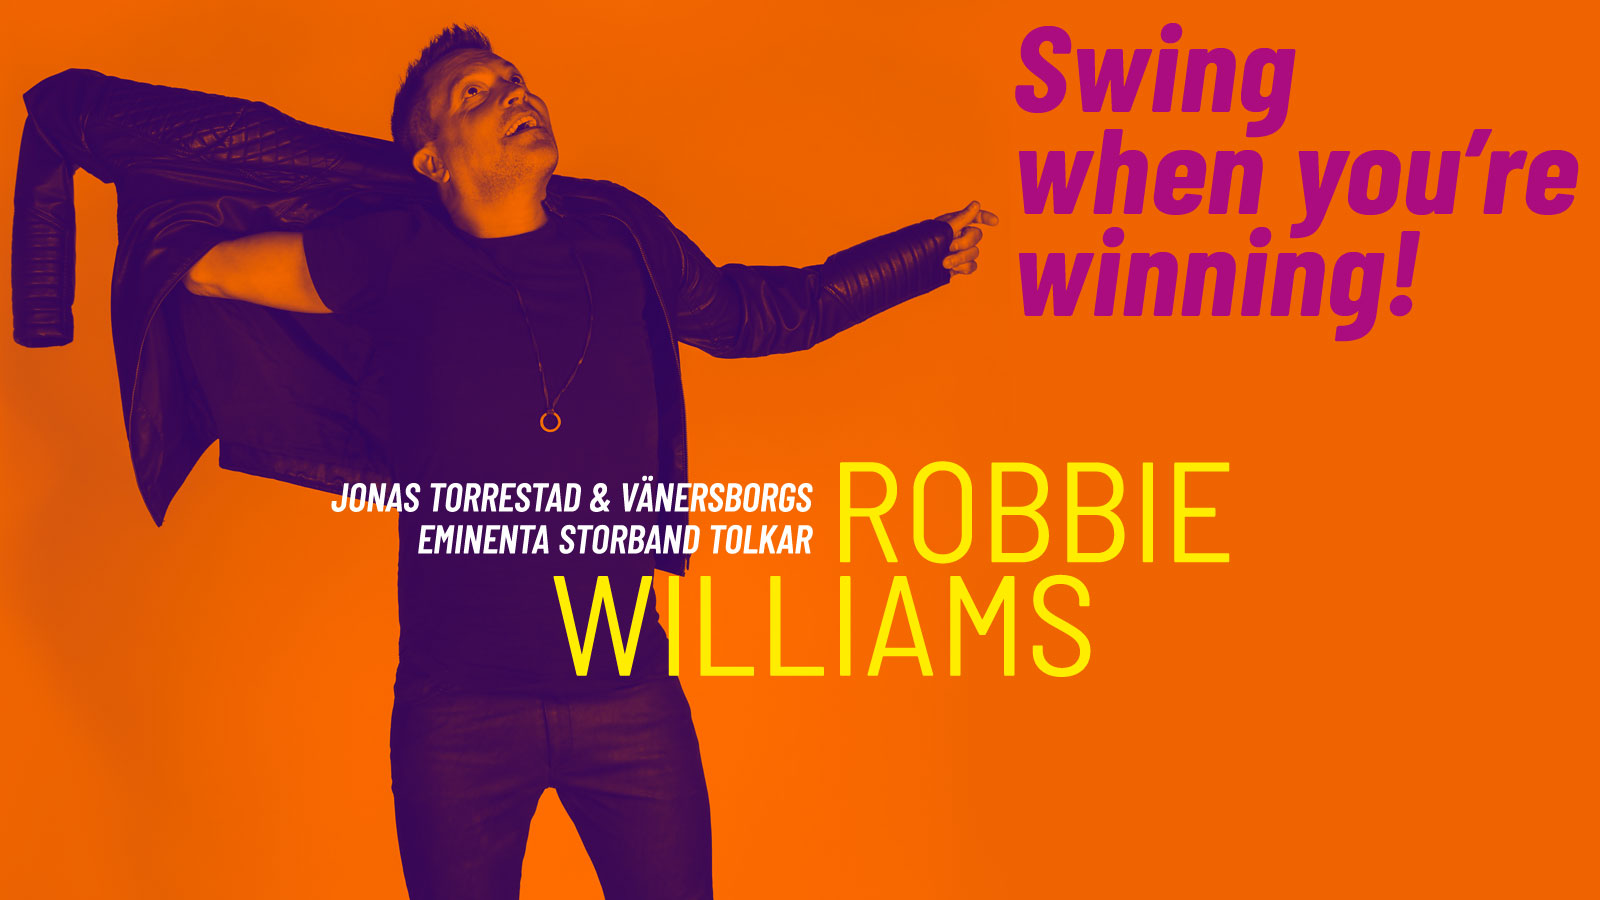 Swing when your winning - Jonas Torrestad & Vänersborgs Eminenta Storband tolkar Robbie Williams